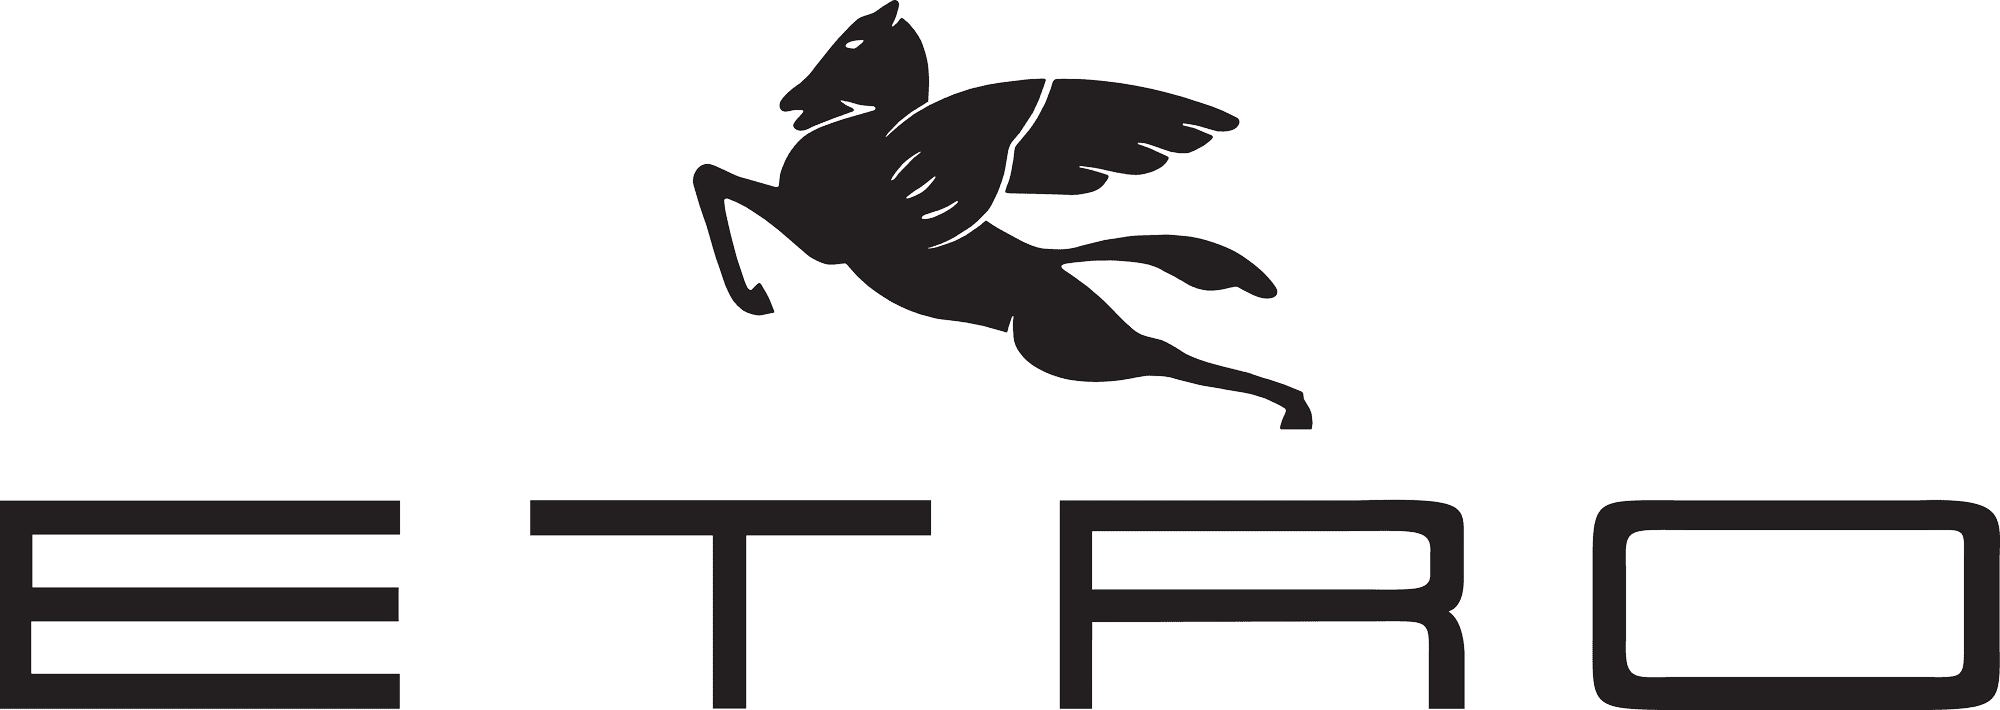 http://itscosmo.it/wp-content/uploads/2021/08/Etro-logo.png